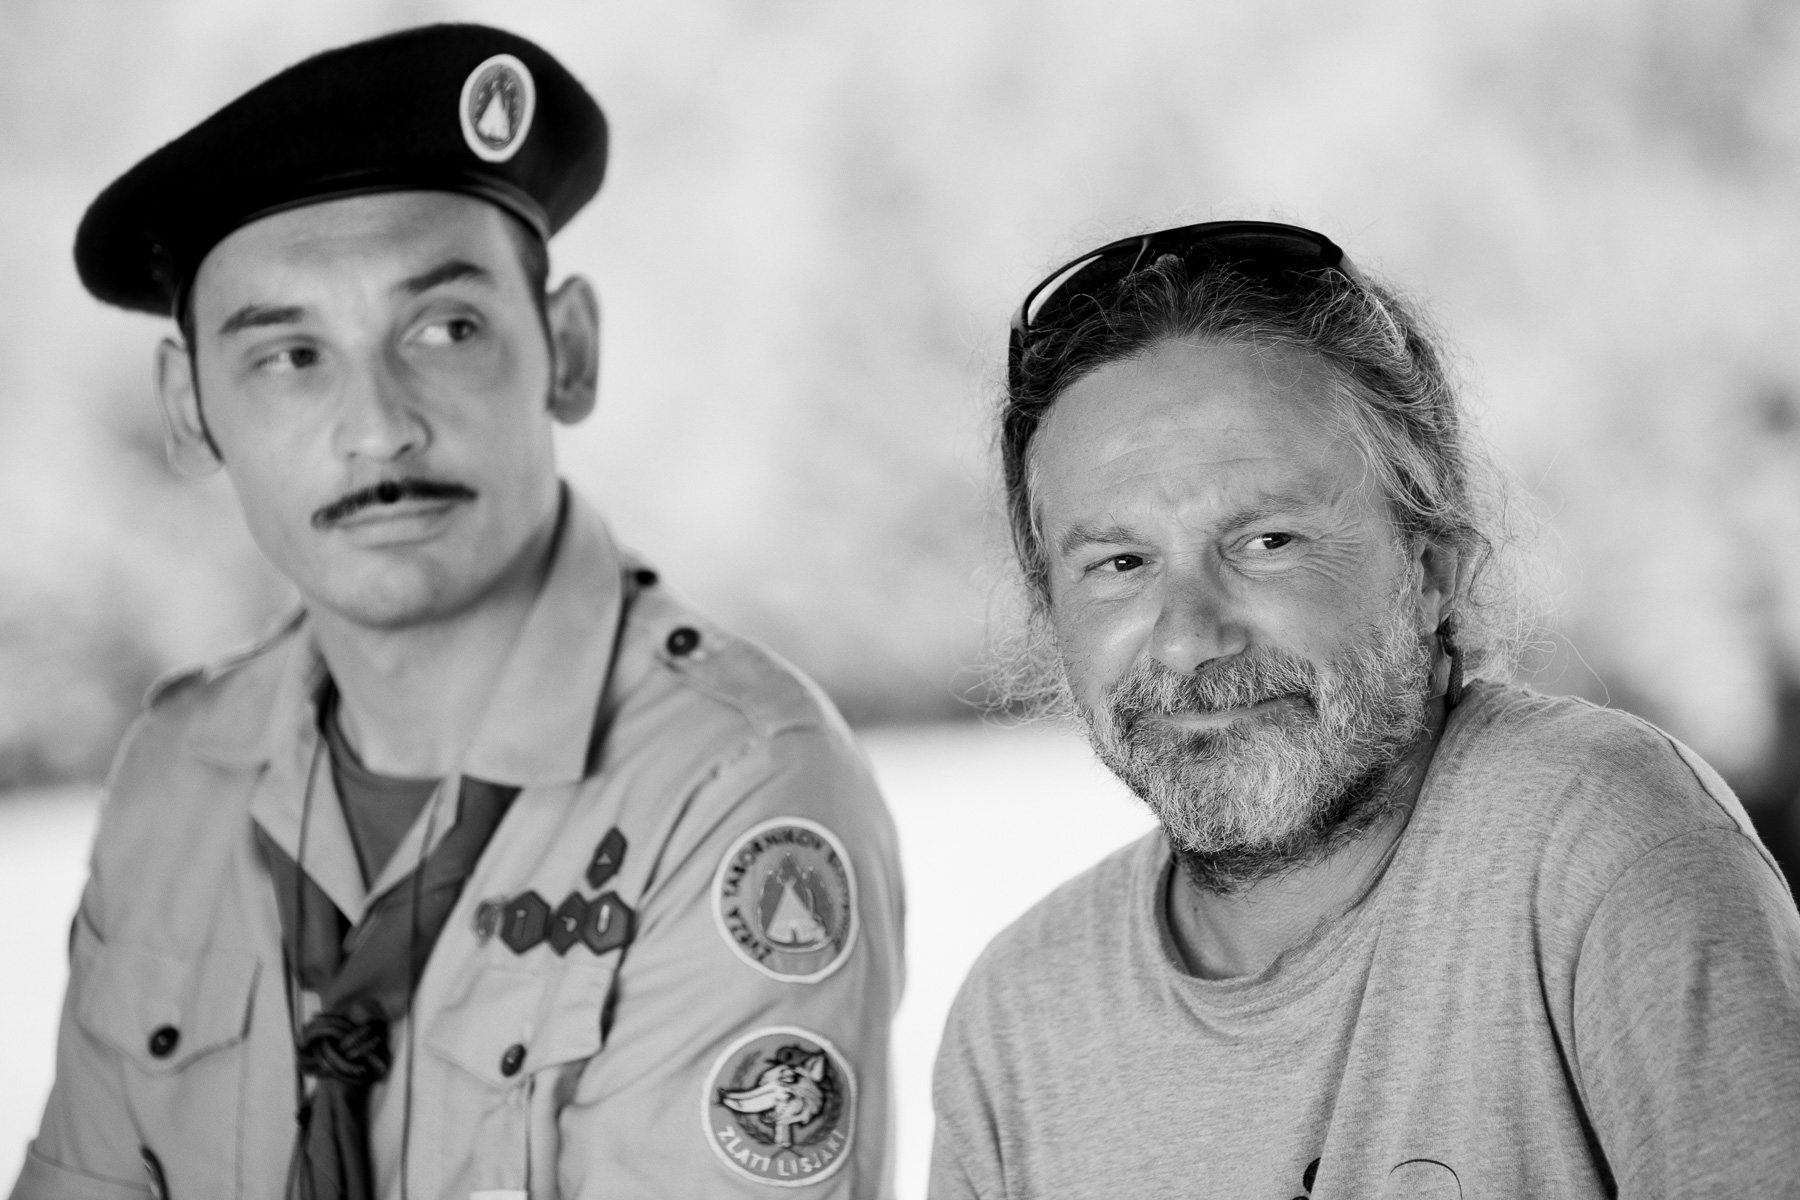 Actor Tadej Toš and director Miha Hočevar on the set of Going Our Way 2.